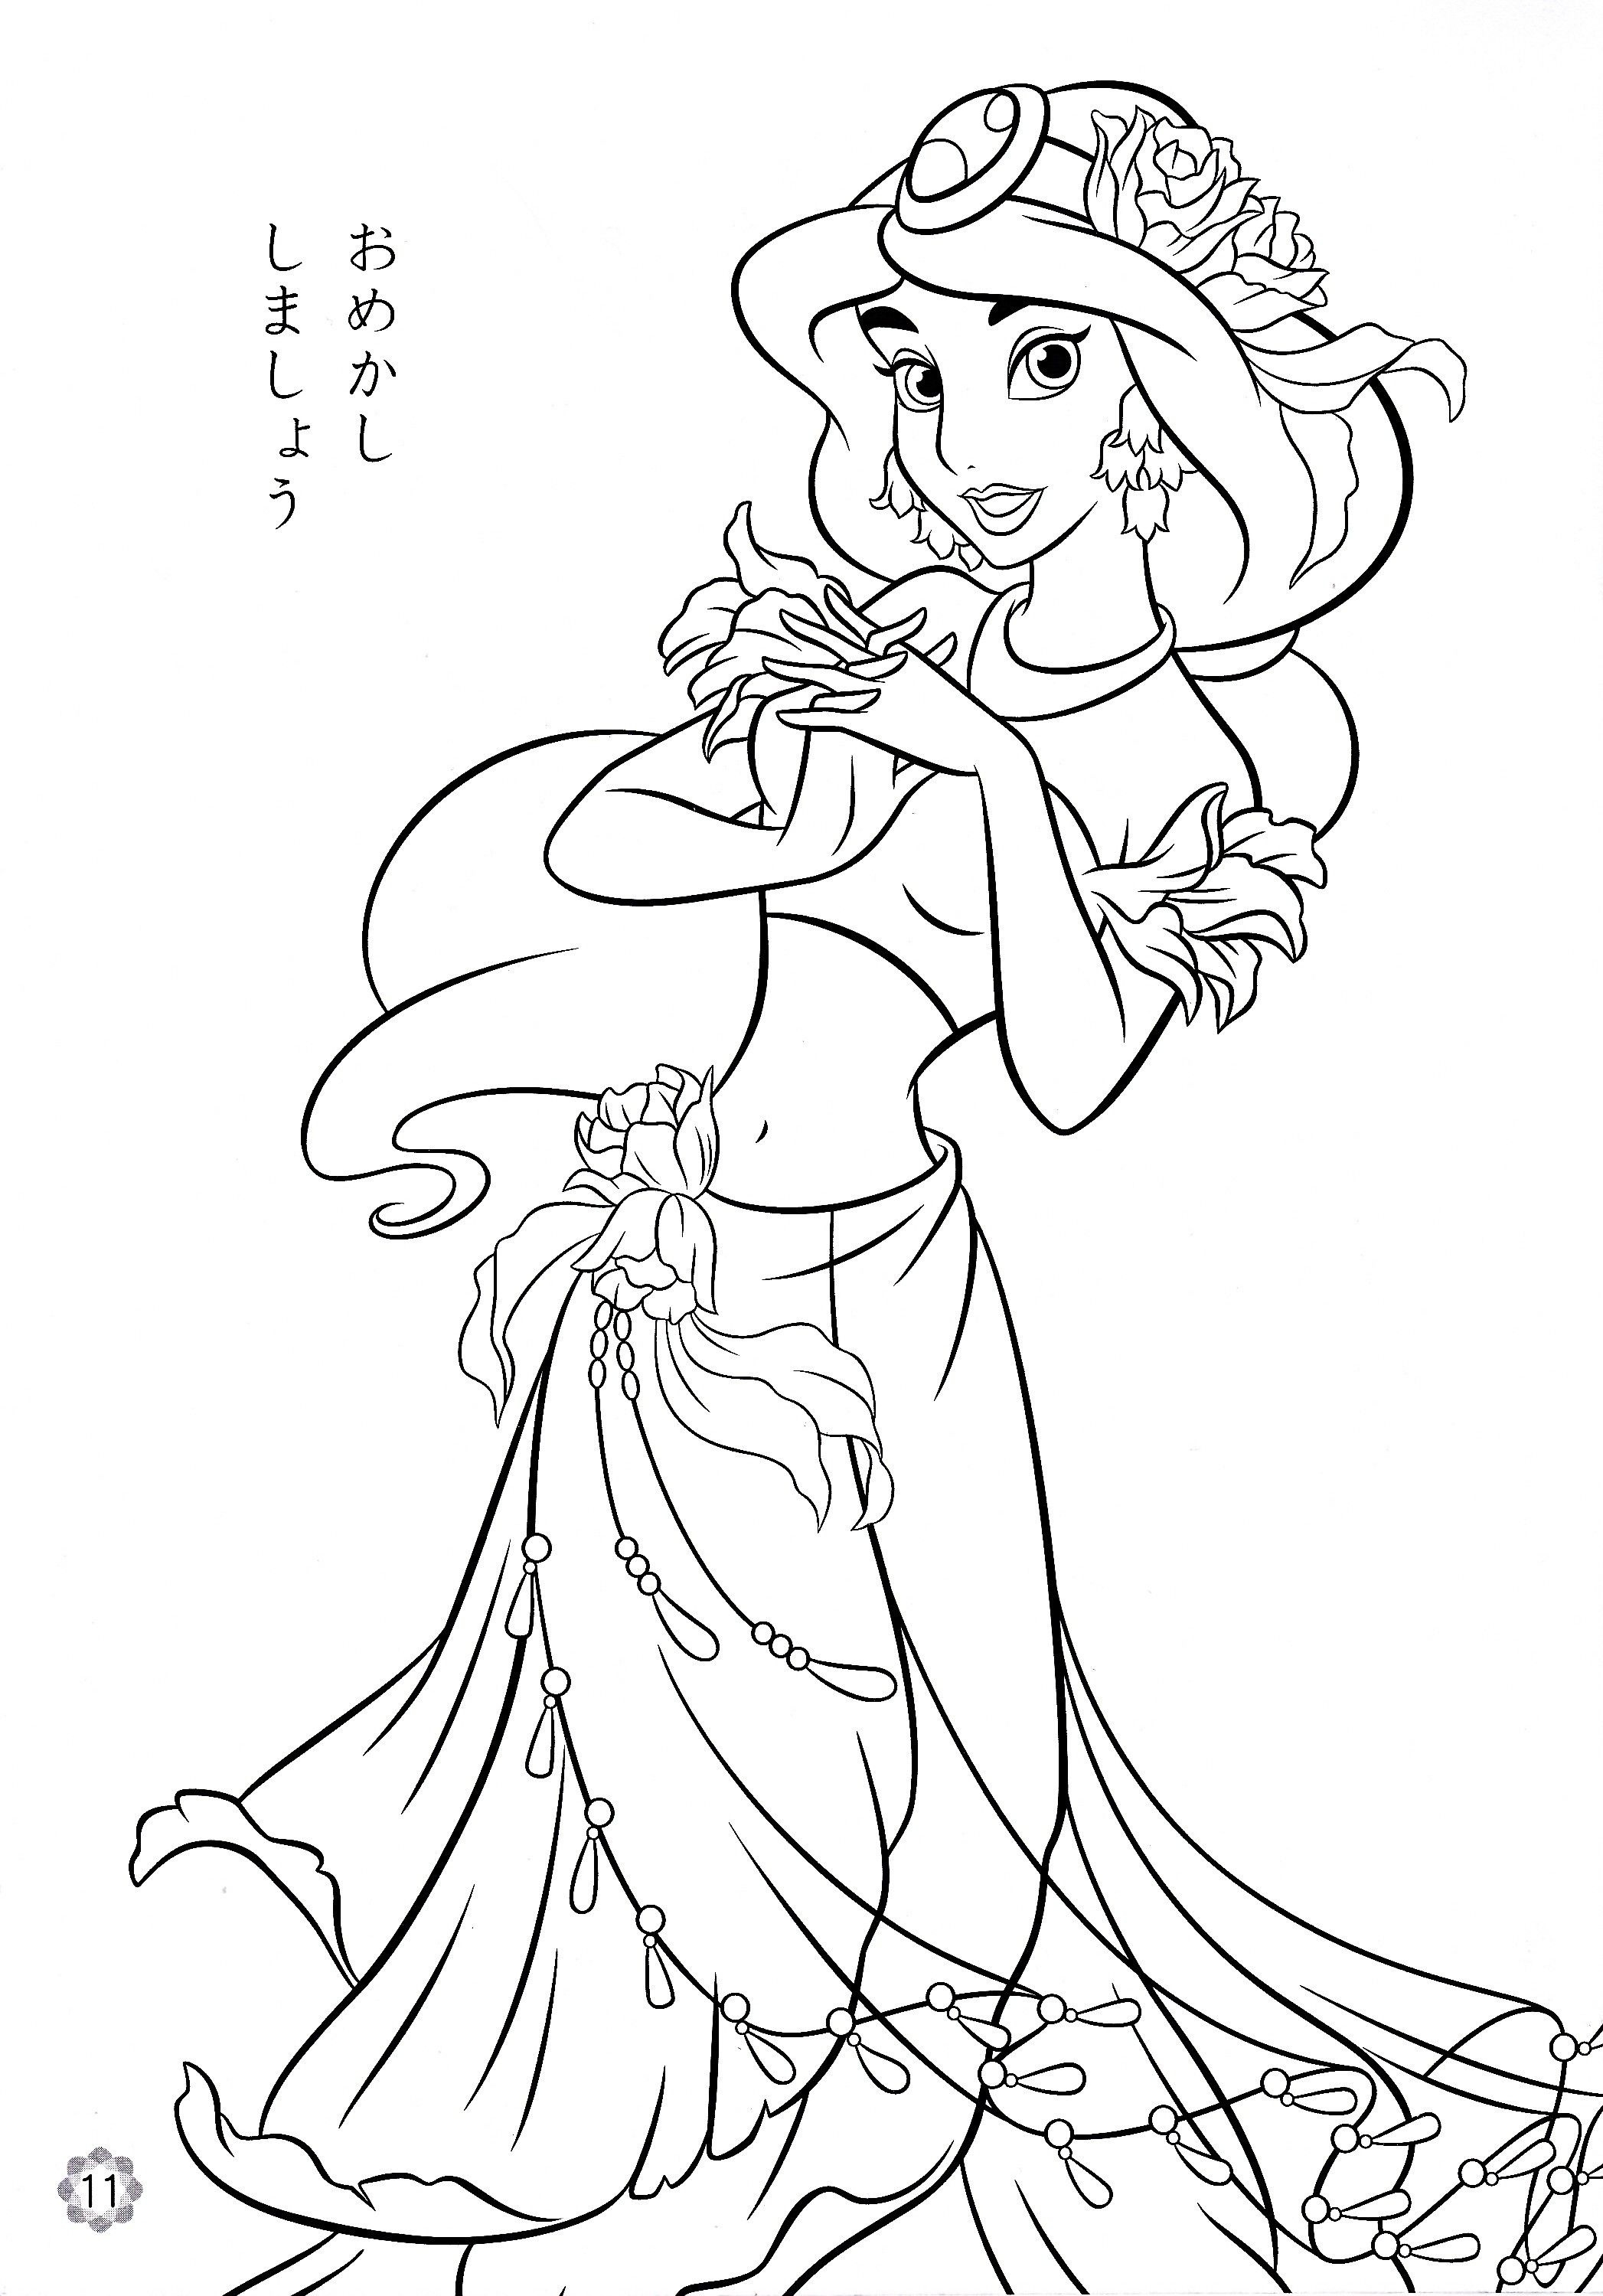 Free Printable Coloring Pages Princess Jasmine – Through The - Free Printable Princess Jasmine Coloring Pages